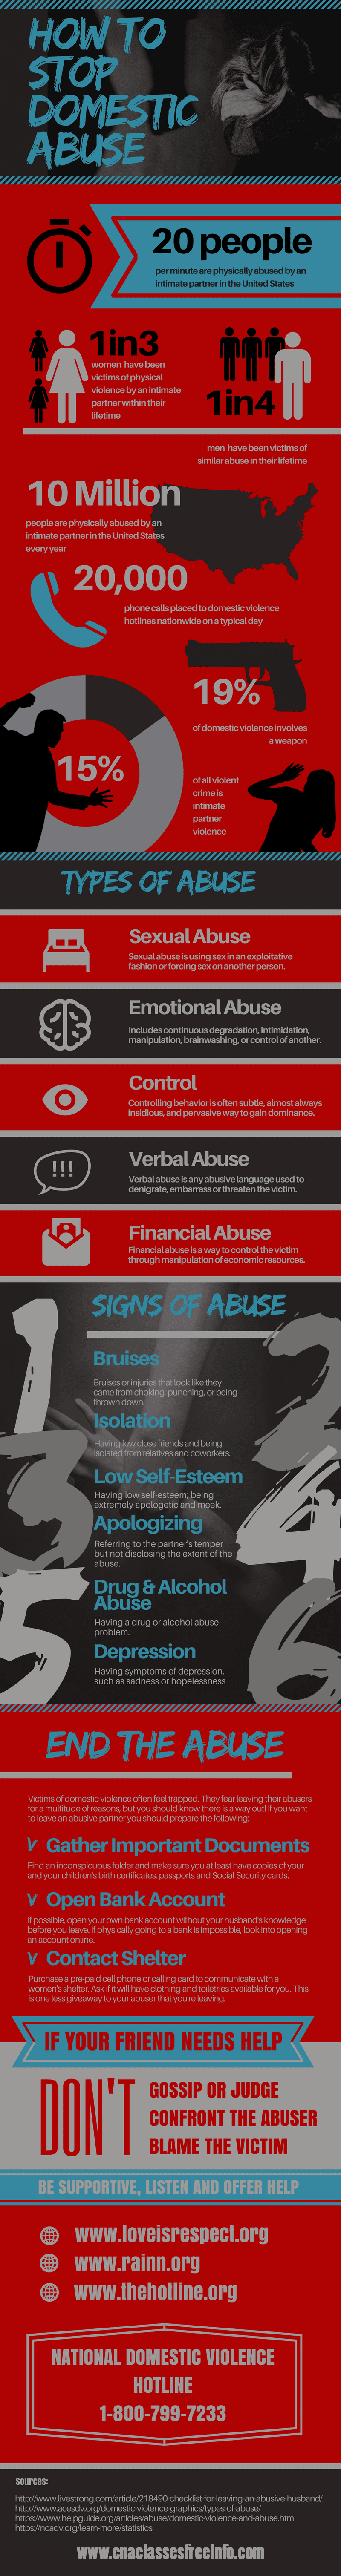 Domestic-Abuse-Infographic-1-2